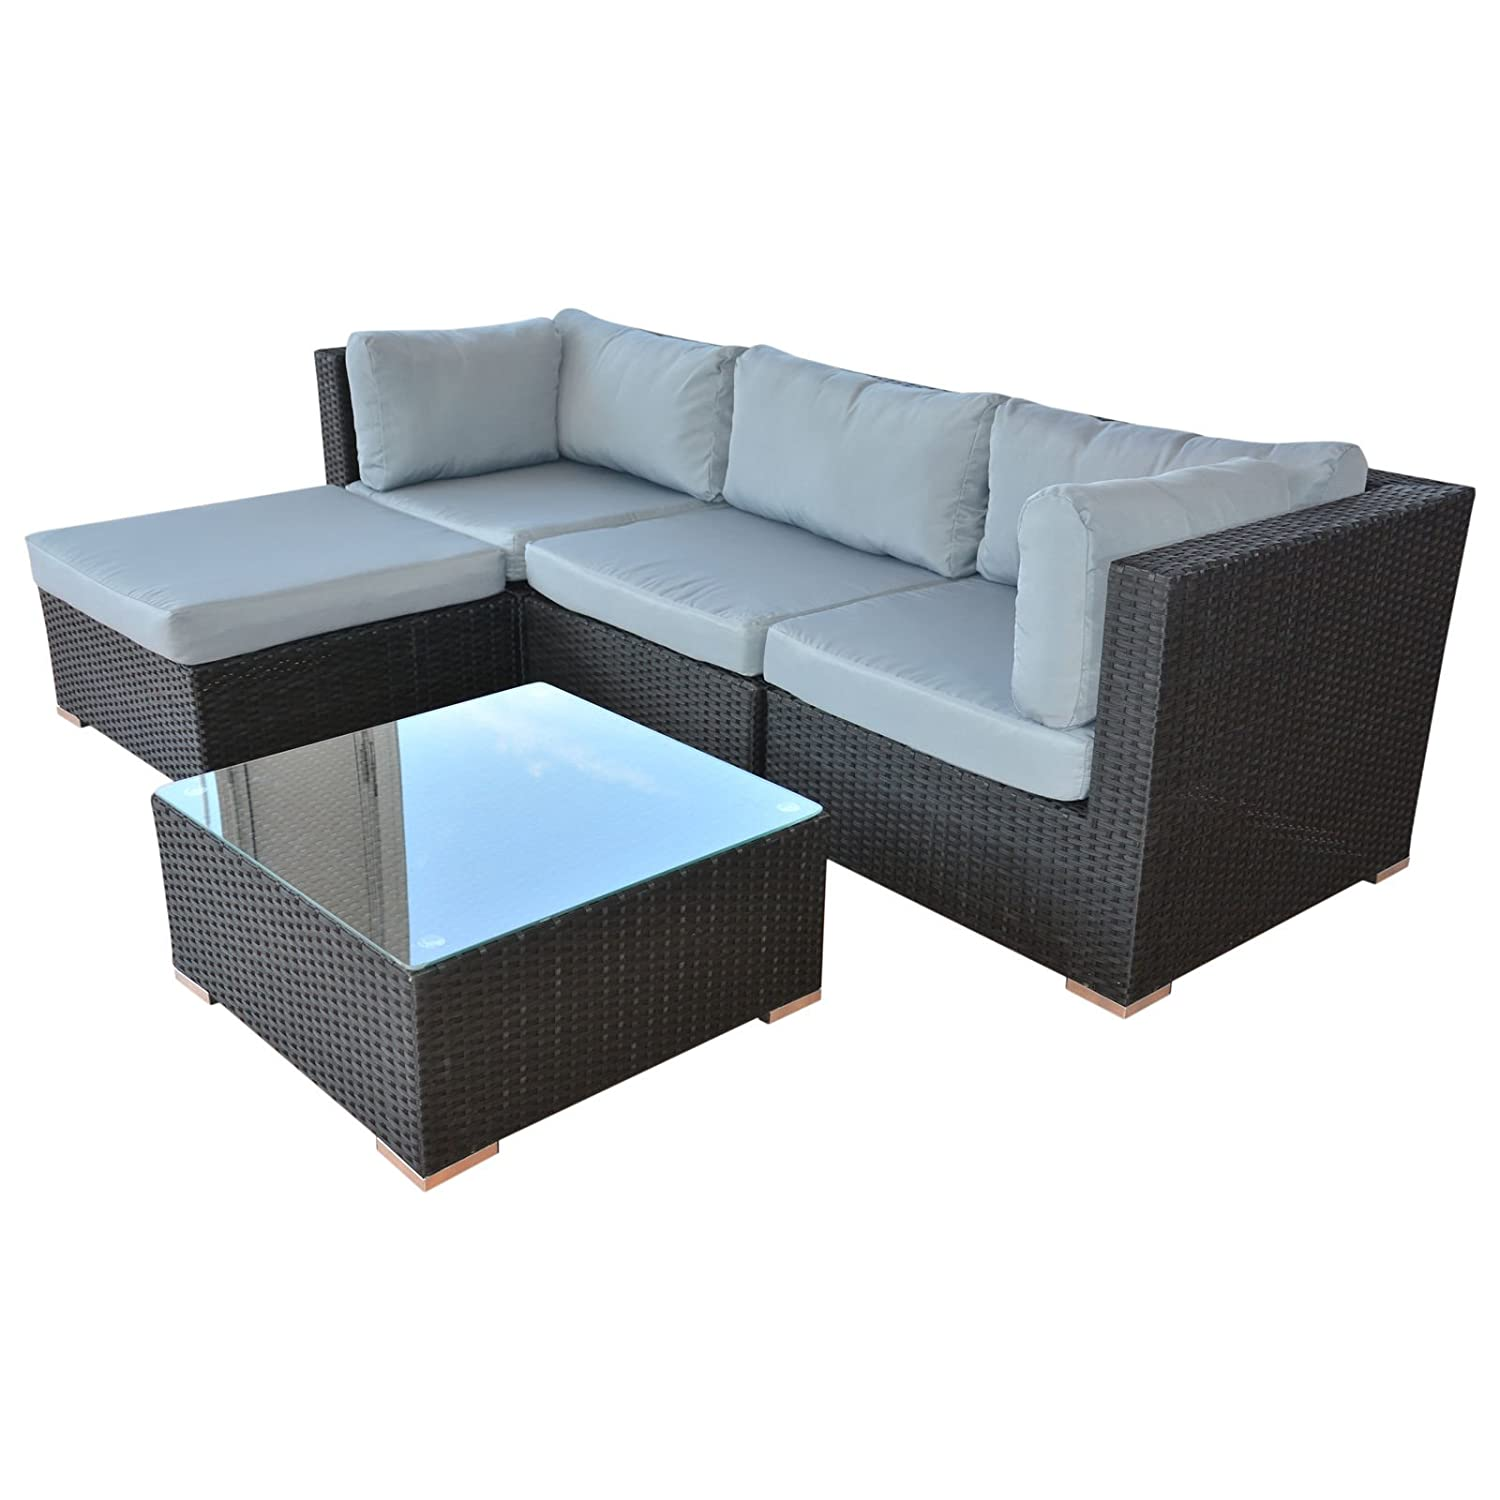 ssitg polyrattan lounge sitzgruppe gartenm bel garnitur poly rattan sitzpl tze g nstig kaufen. Black Bedroom Furniture Sets. Home Design Ideas